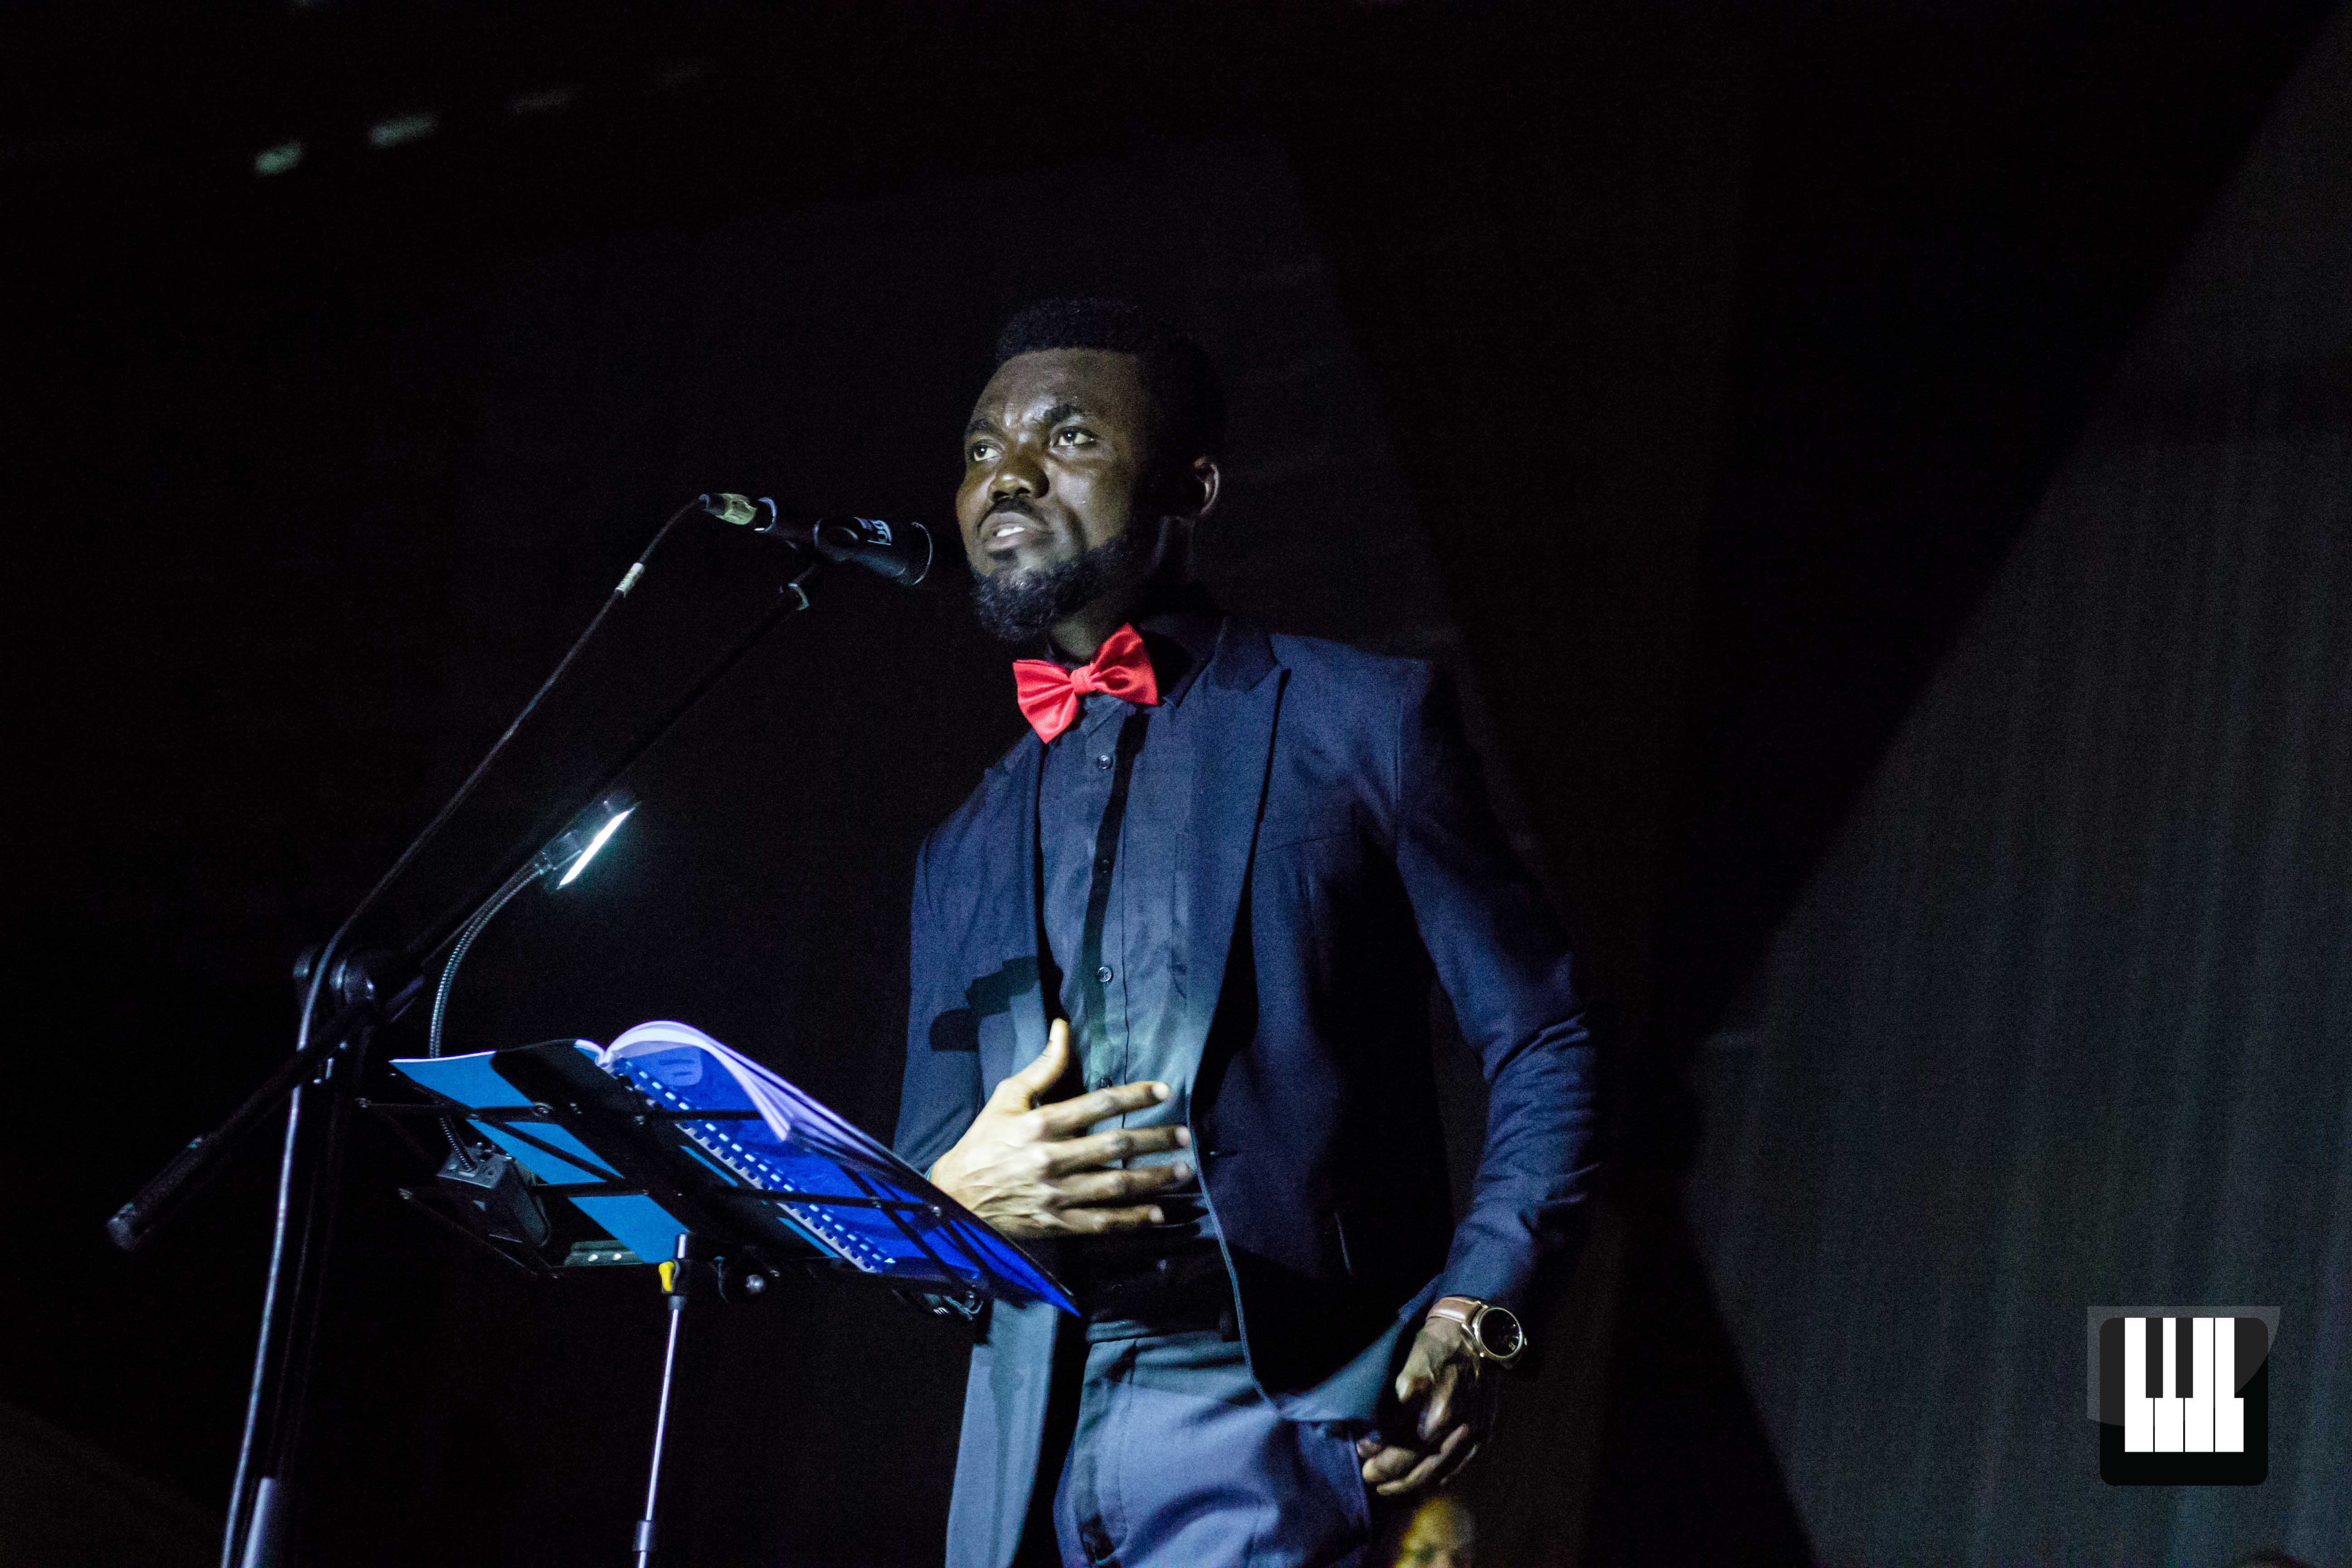 Klassicals of the Season at Easter Seasonal House's seasonal concert, Klassicals of the Season, explored the life of Christ in an unorthodox way at an intimate concert held in Accra. Jesse talks about his first Seasonal House concert.